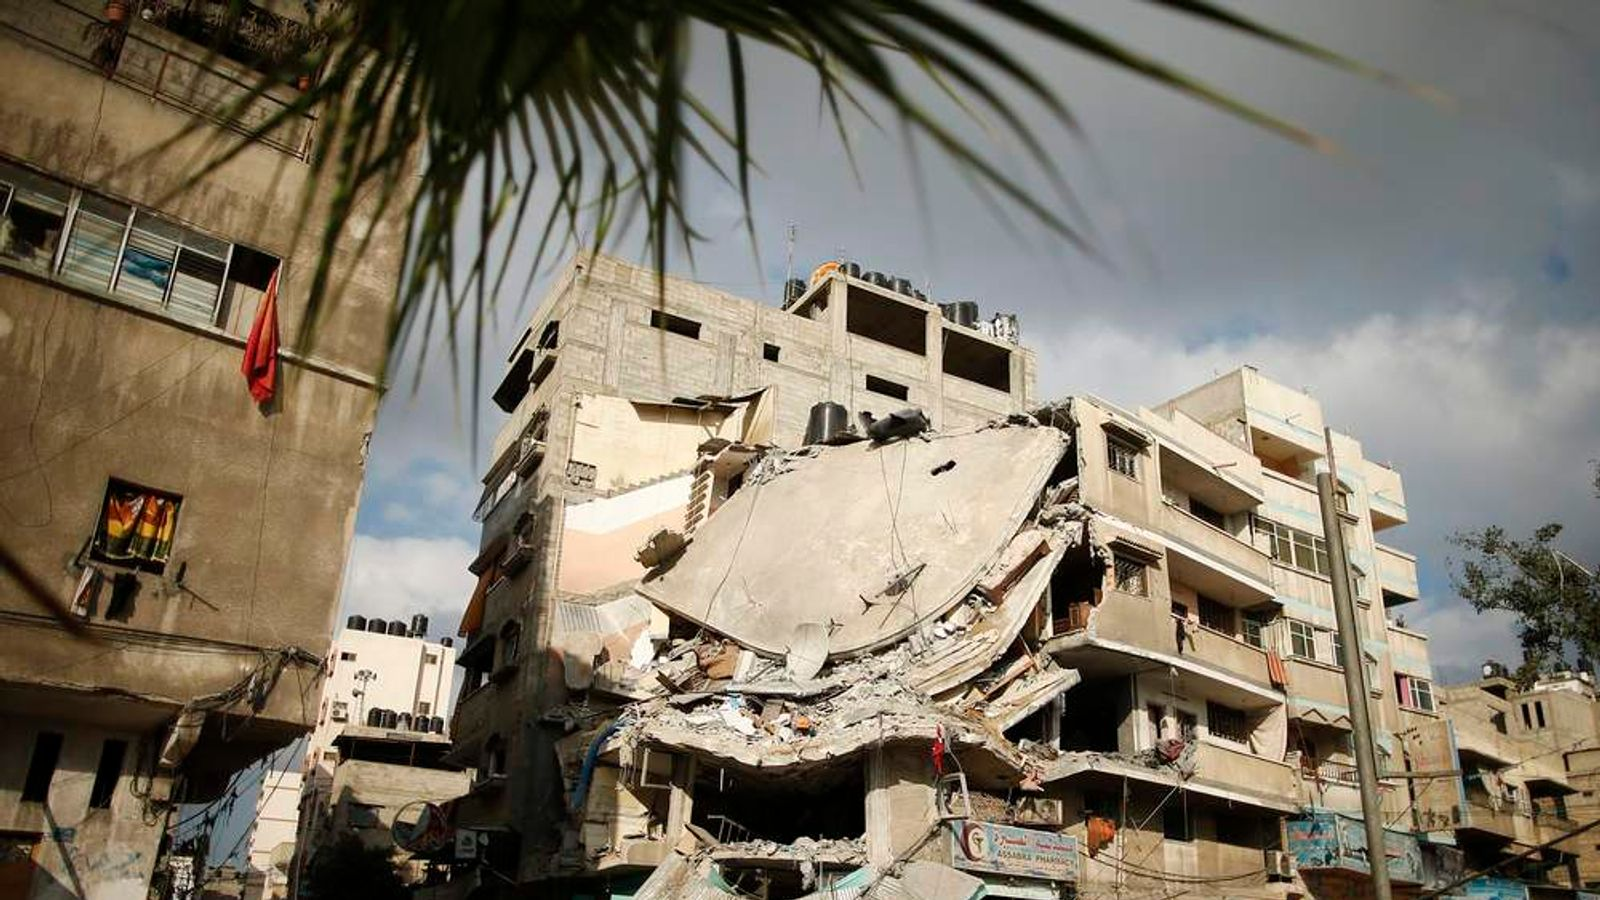 A destroyed house, which police said was targeted in an Israeli air strike, is seen in Gaza City